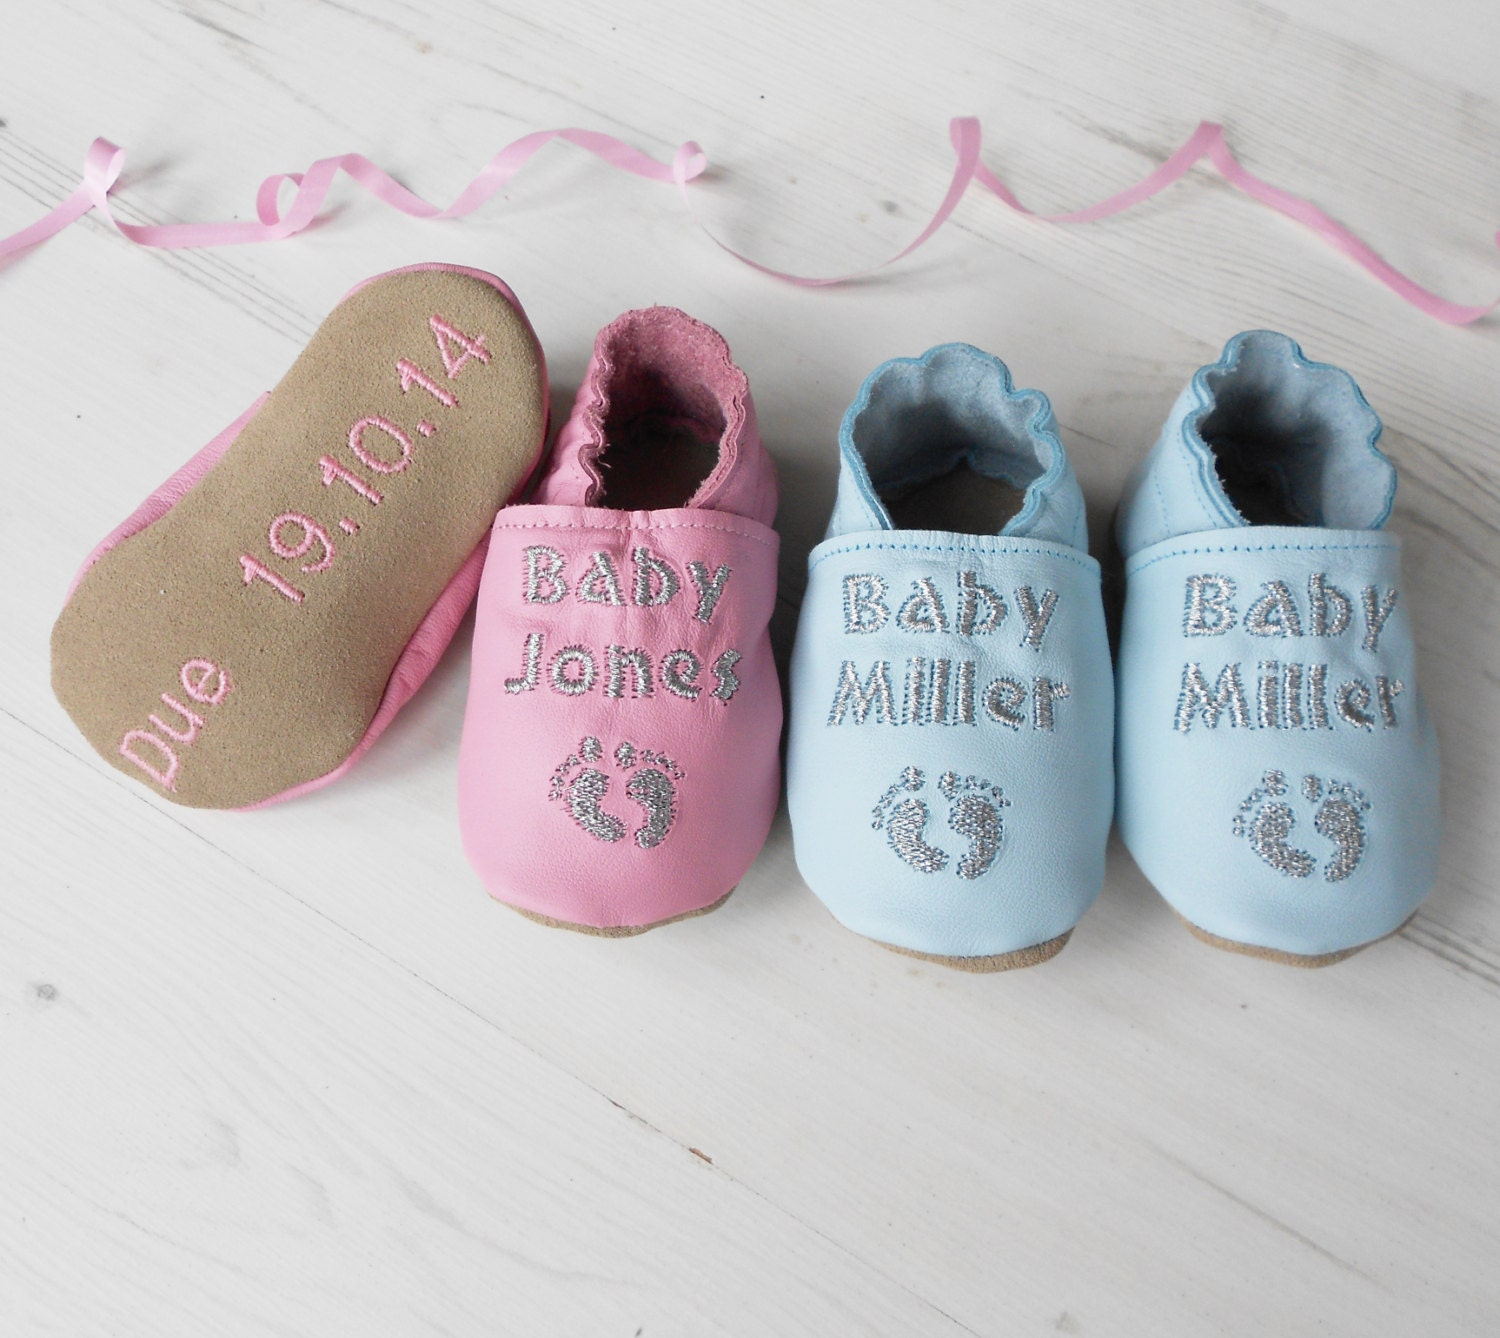 Expecting Baby Gifts Uk : Baby shower gift personalized shoes